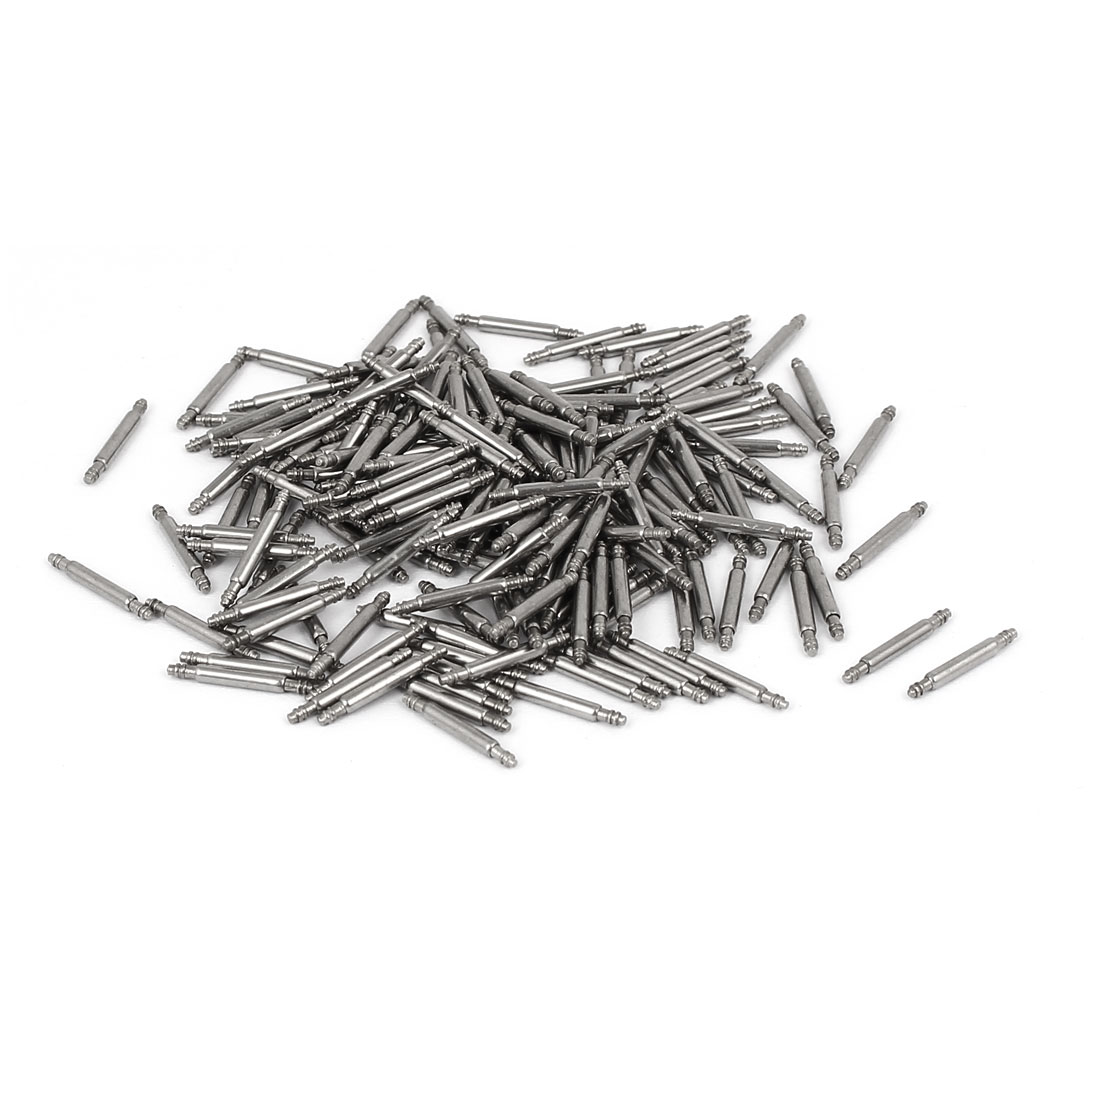 Stainless Steel Double Flanged End Spring Bar Pin 200pcs for 10mm Watch Band